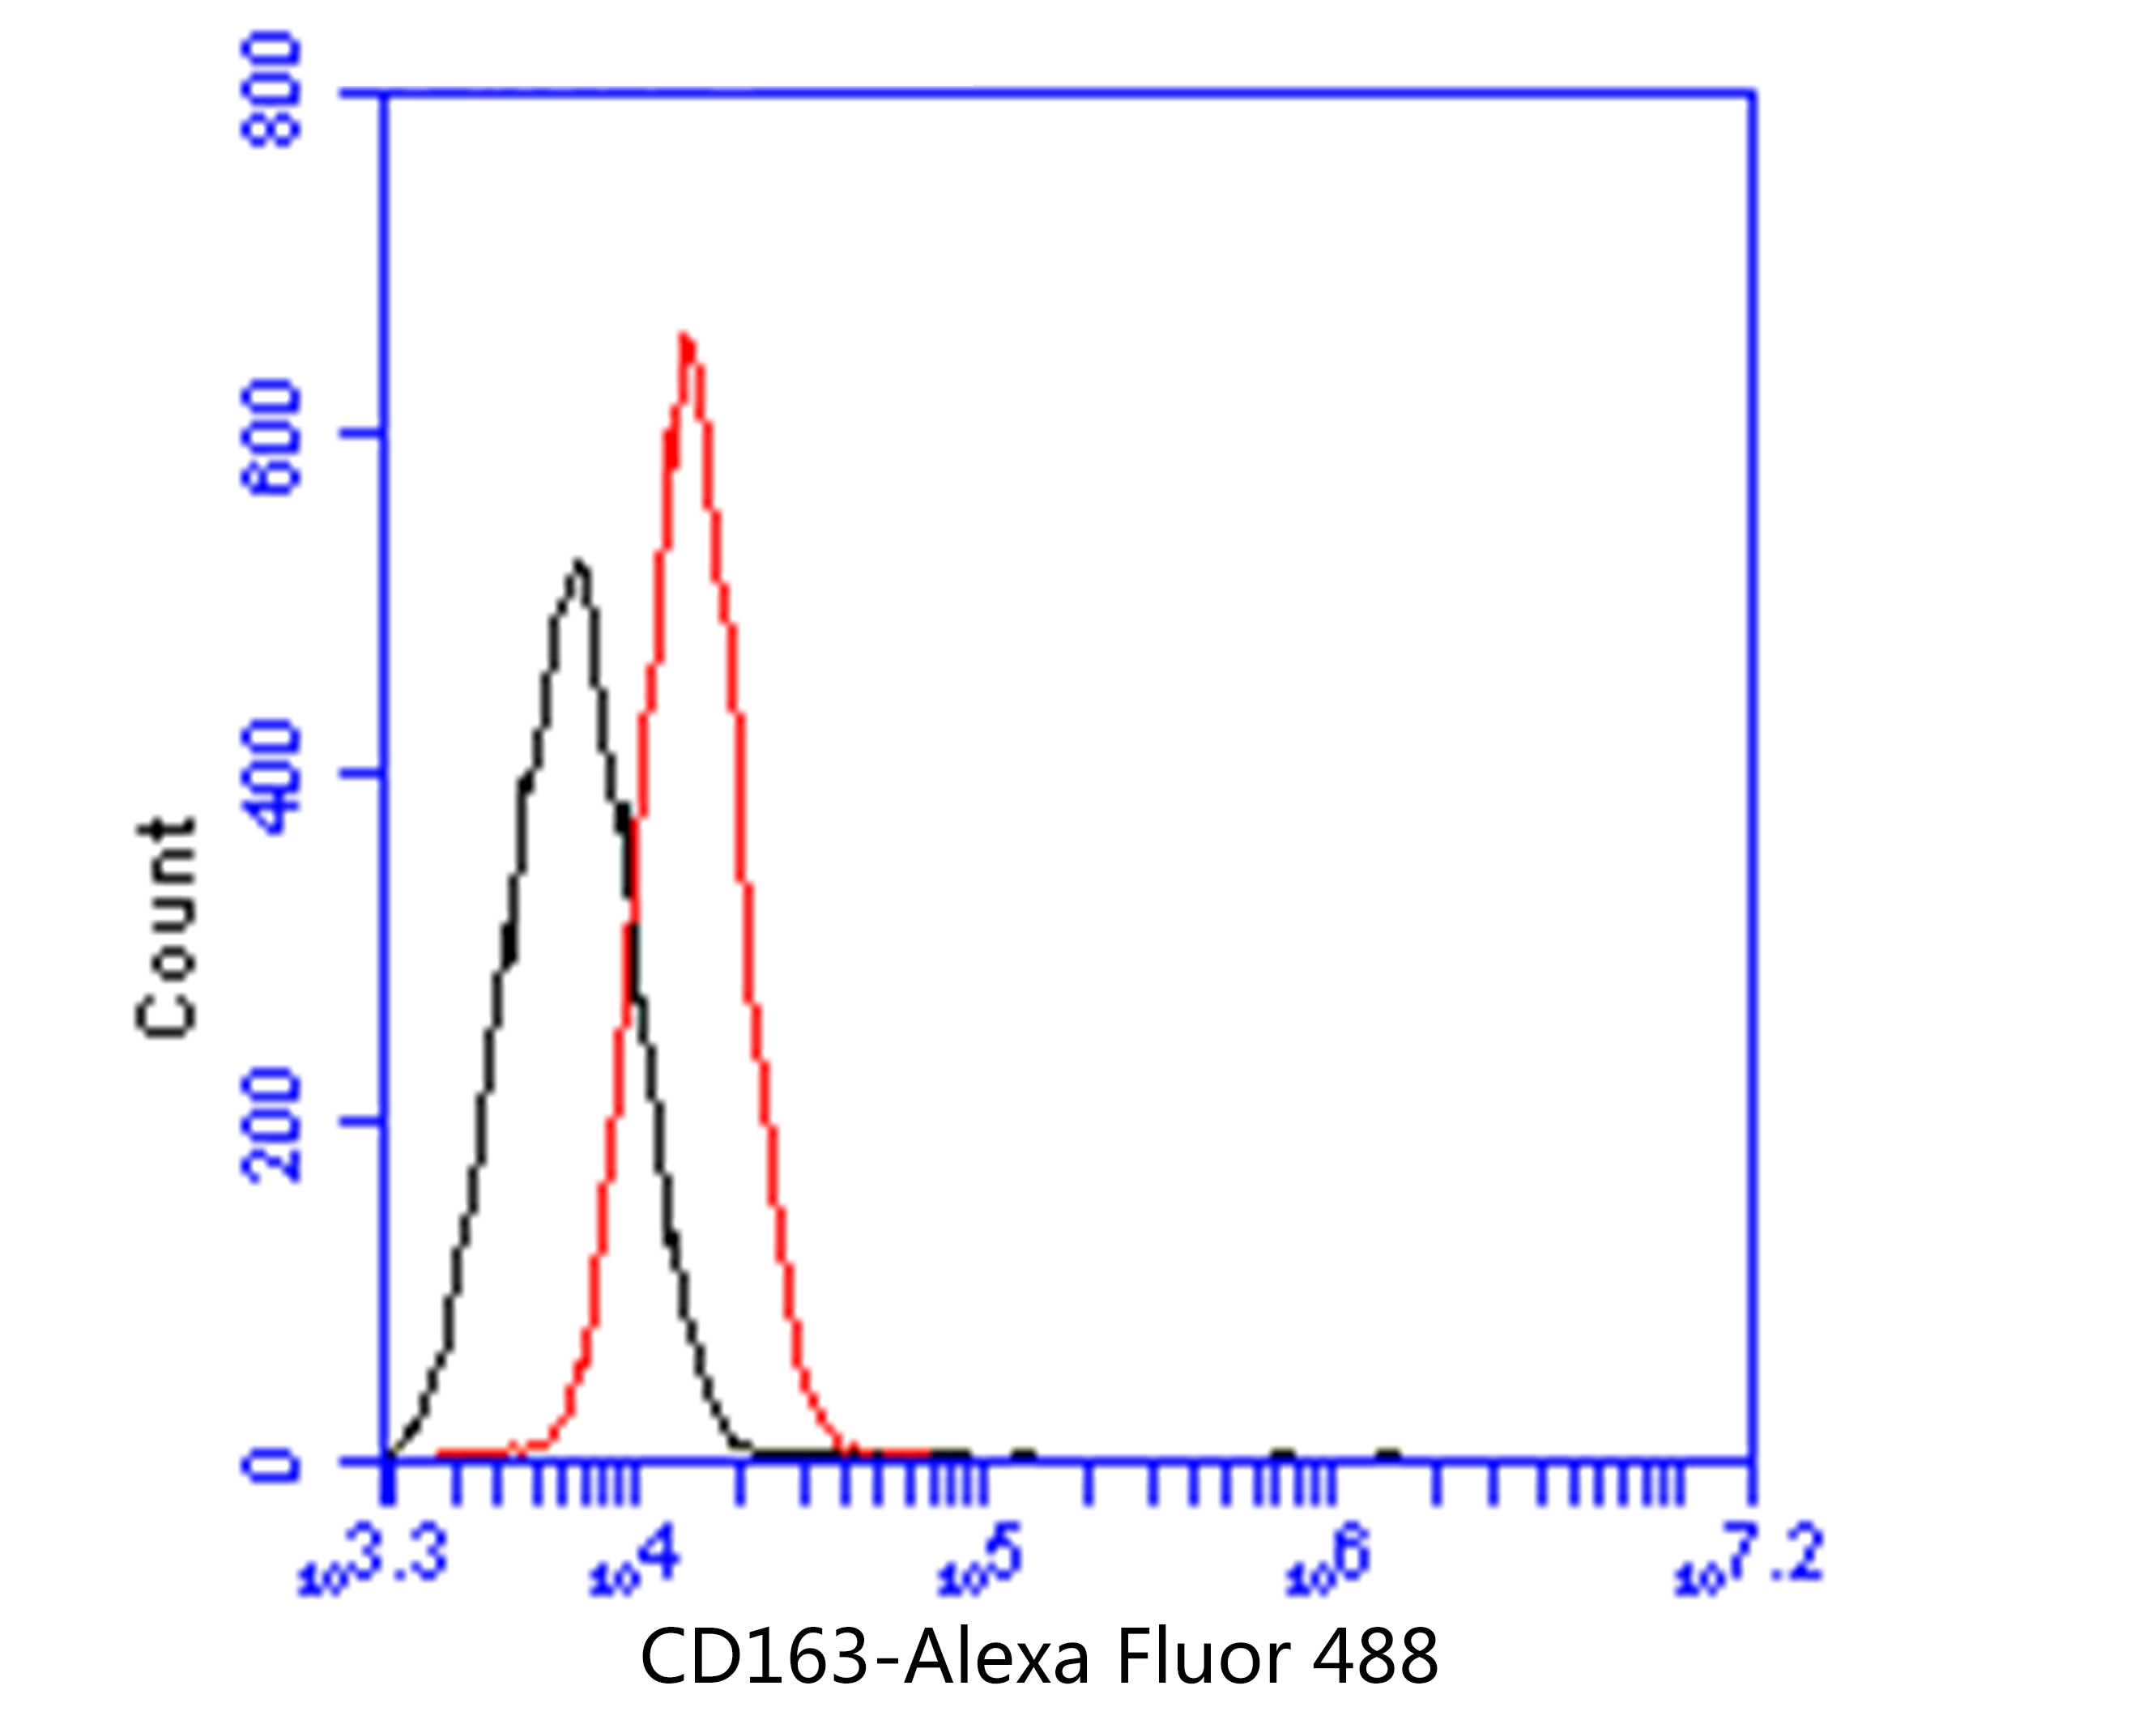 Flow cytometric analysis of CD163 was done on HT-29 cells. The cells were fixed, permeabilized and stained with the primary antibody (EM1901-90, 1/50) (red). After incubation of the primary antibody at room temperature for an hour, the cells were stained with a Alexa Fluor 488-conjugated Goat anti-Mouse IgG Secondary antibody at 1/1000 dilution for 30 minutes.Unlabelled sample was used as a control (cells without incubation with primary antibody; black).